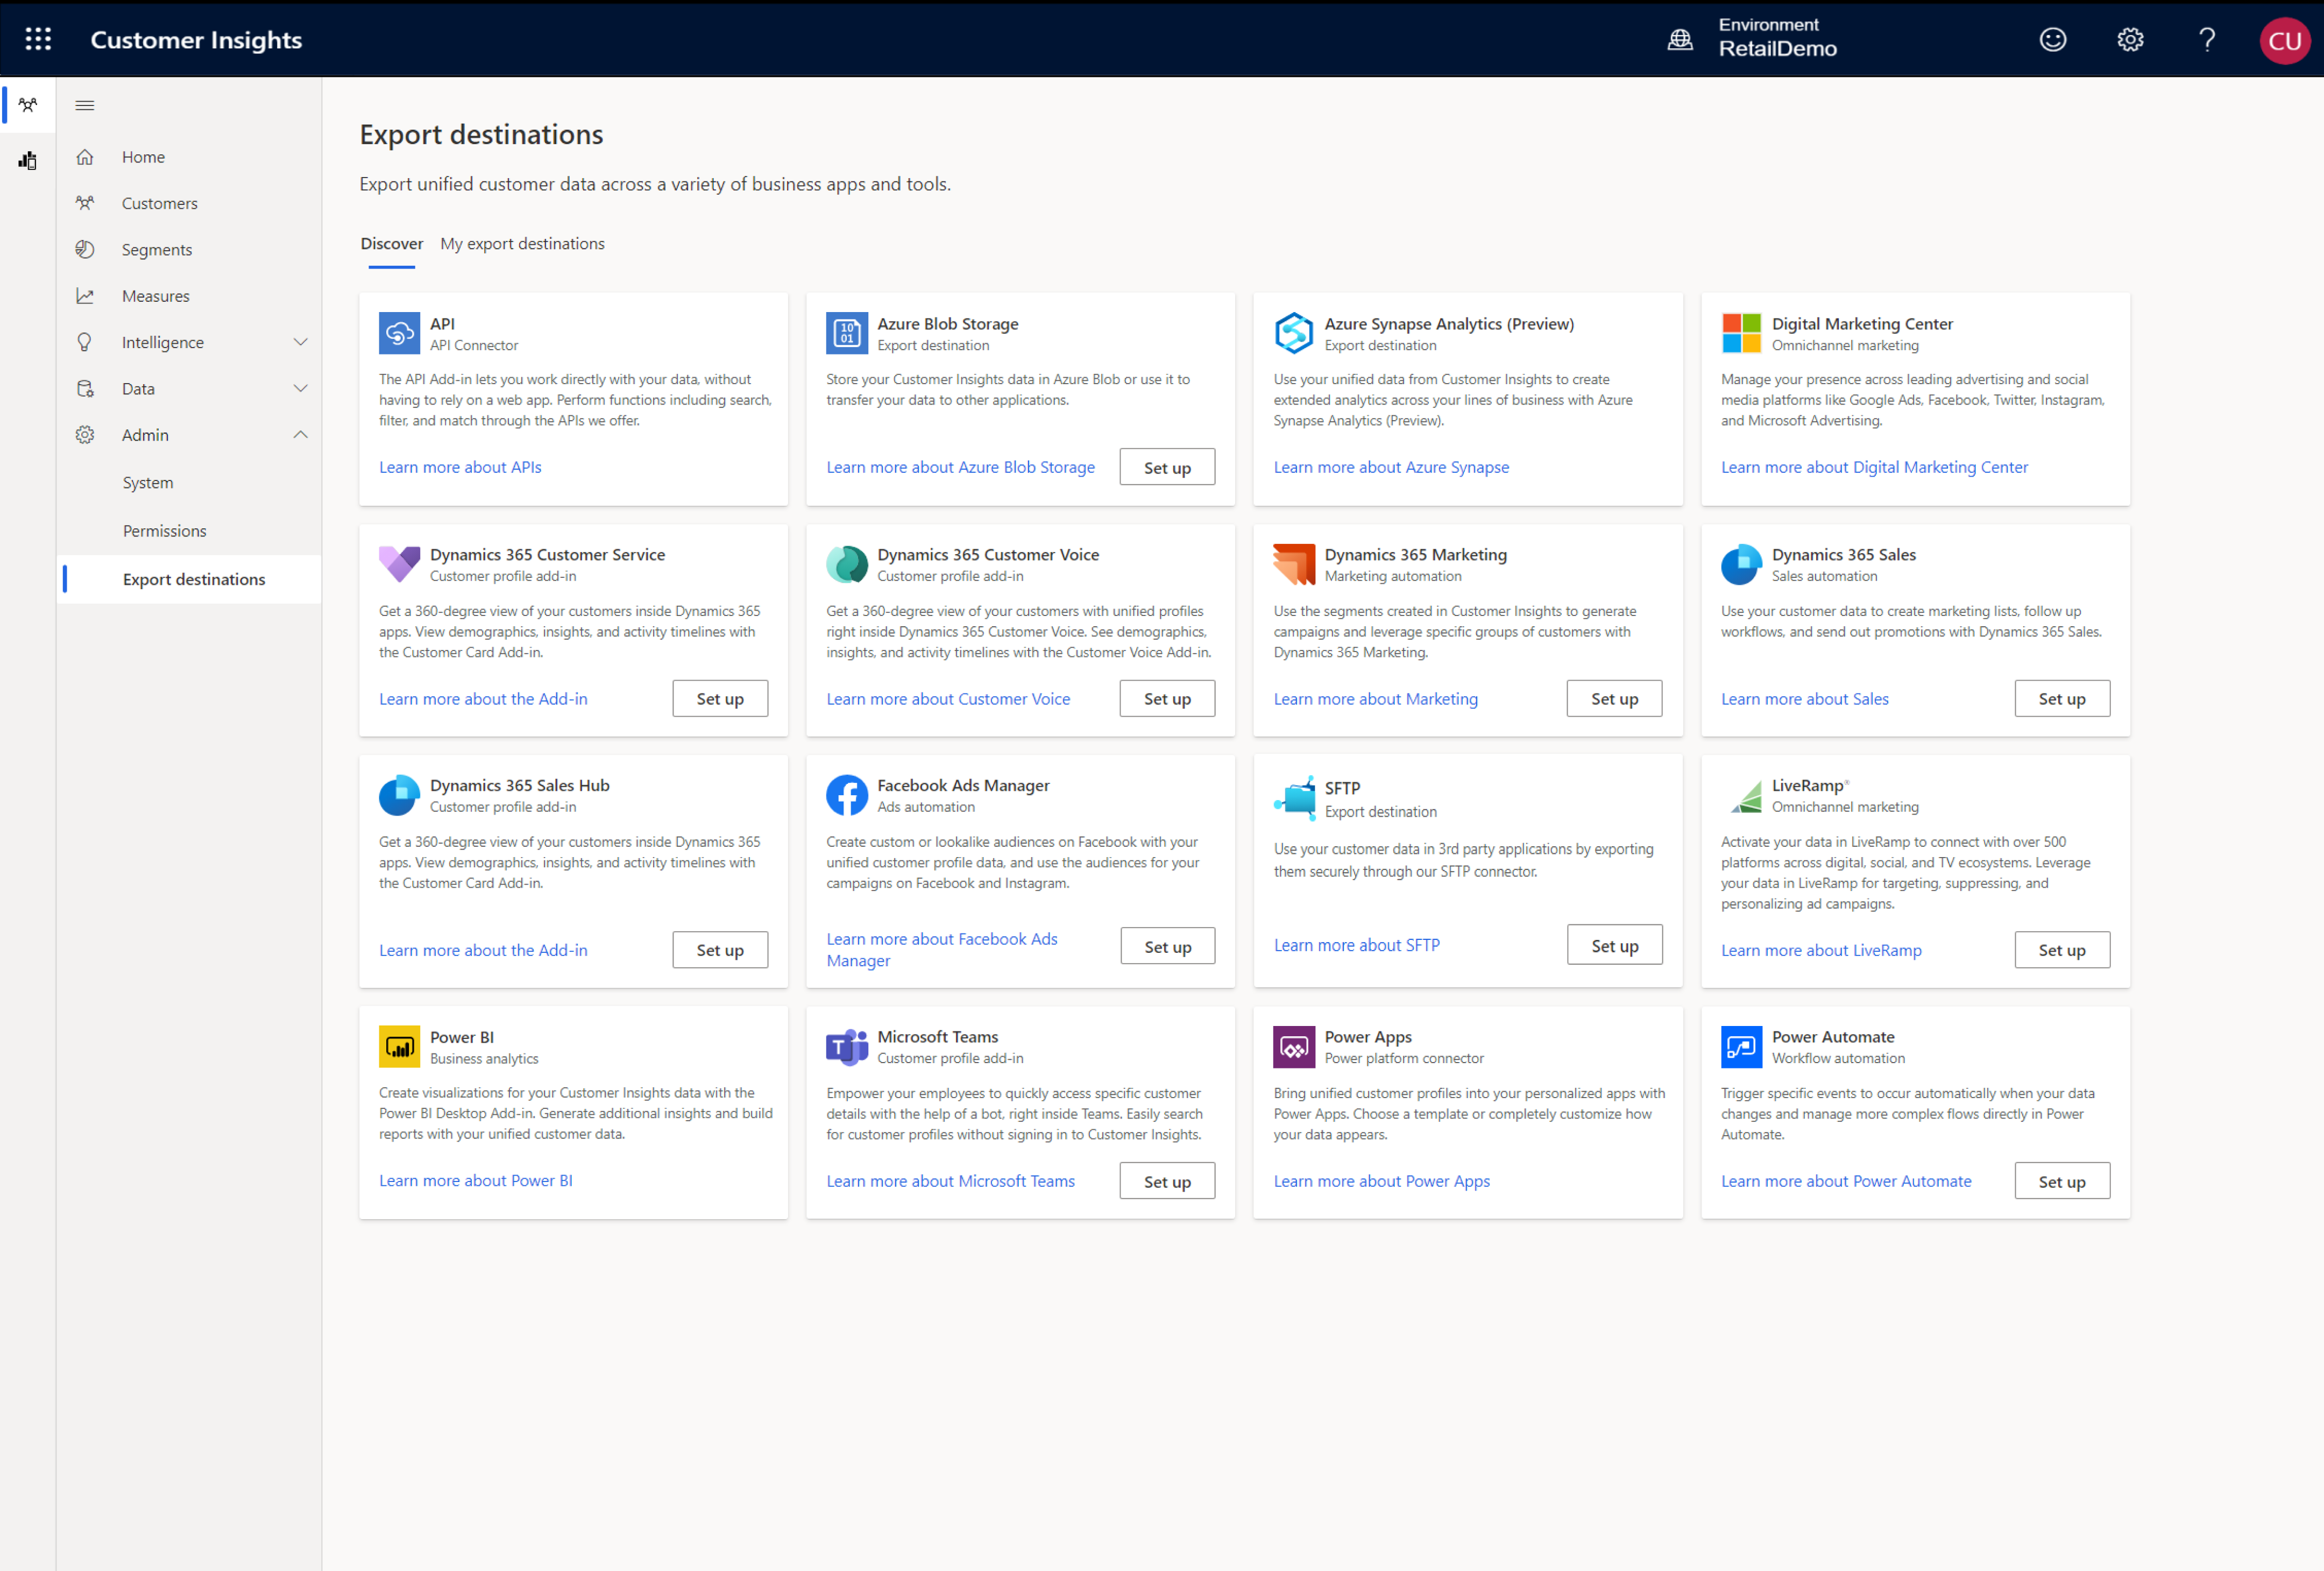 Export unified customer data across a variety of business apps and tools.